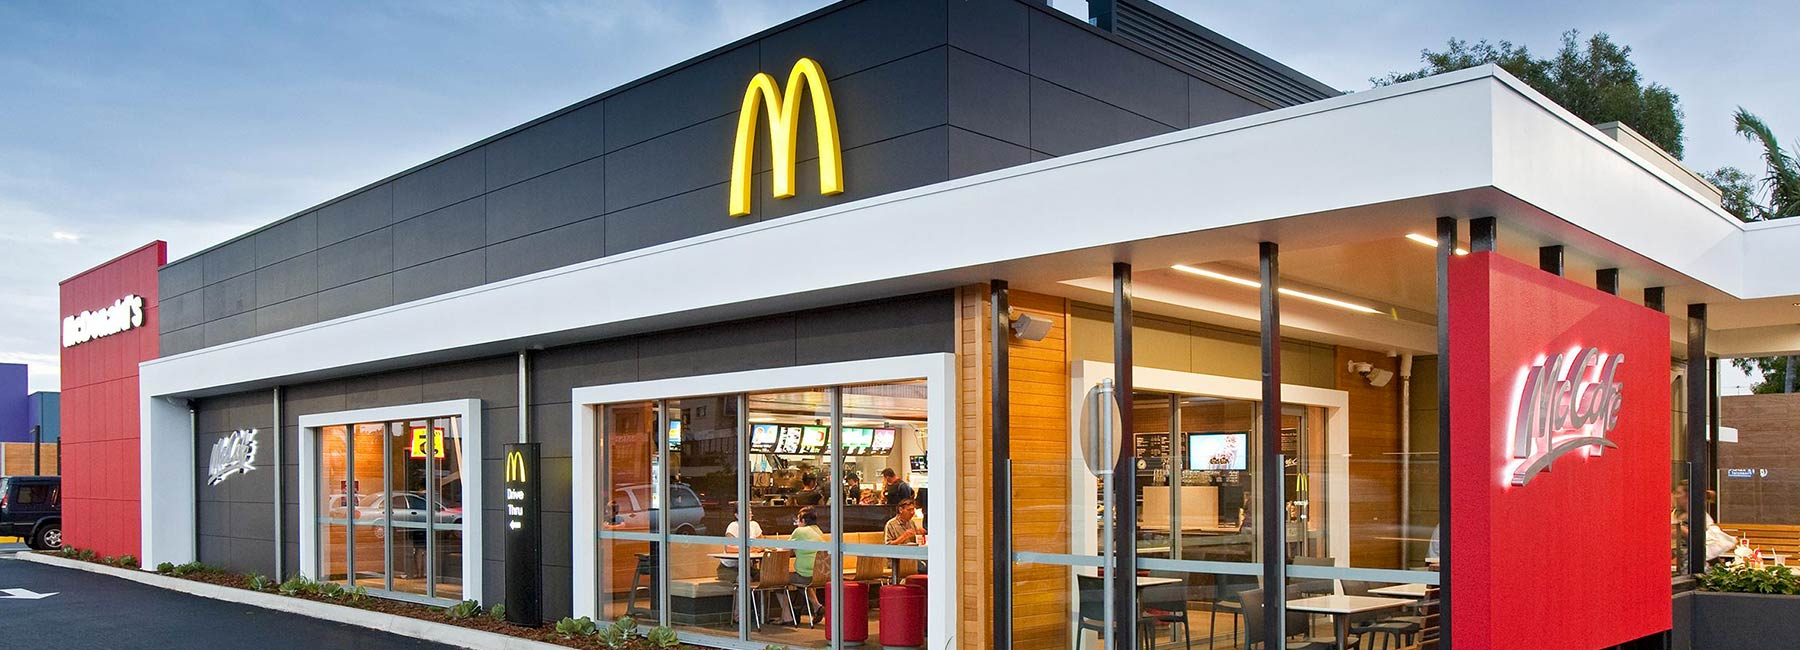 Mechanical & Electrical Engineering Services - US & Canada McDonalds